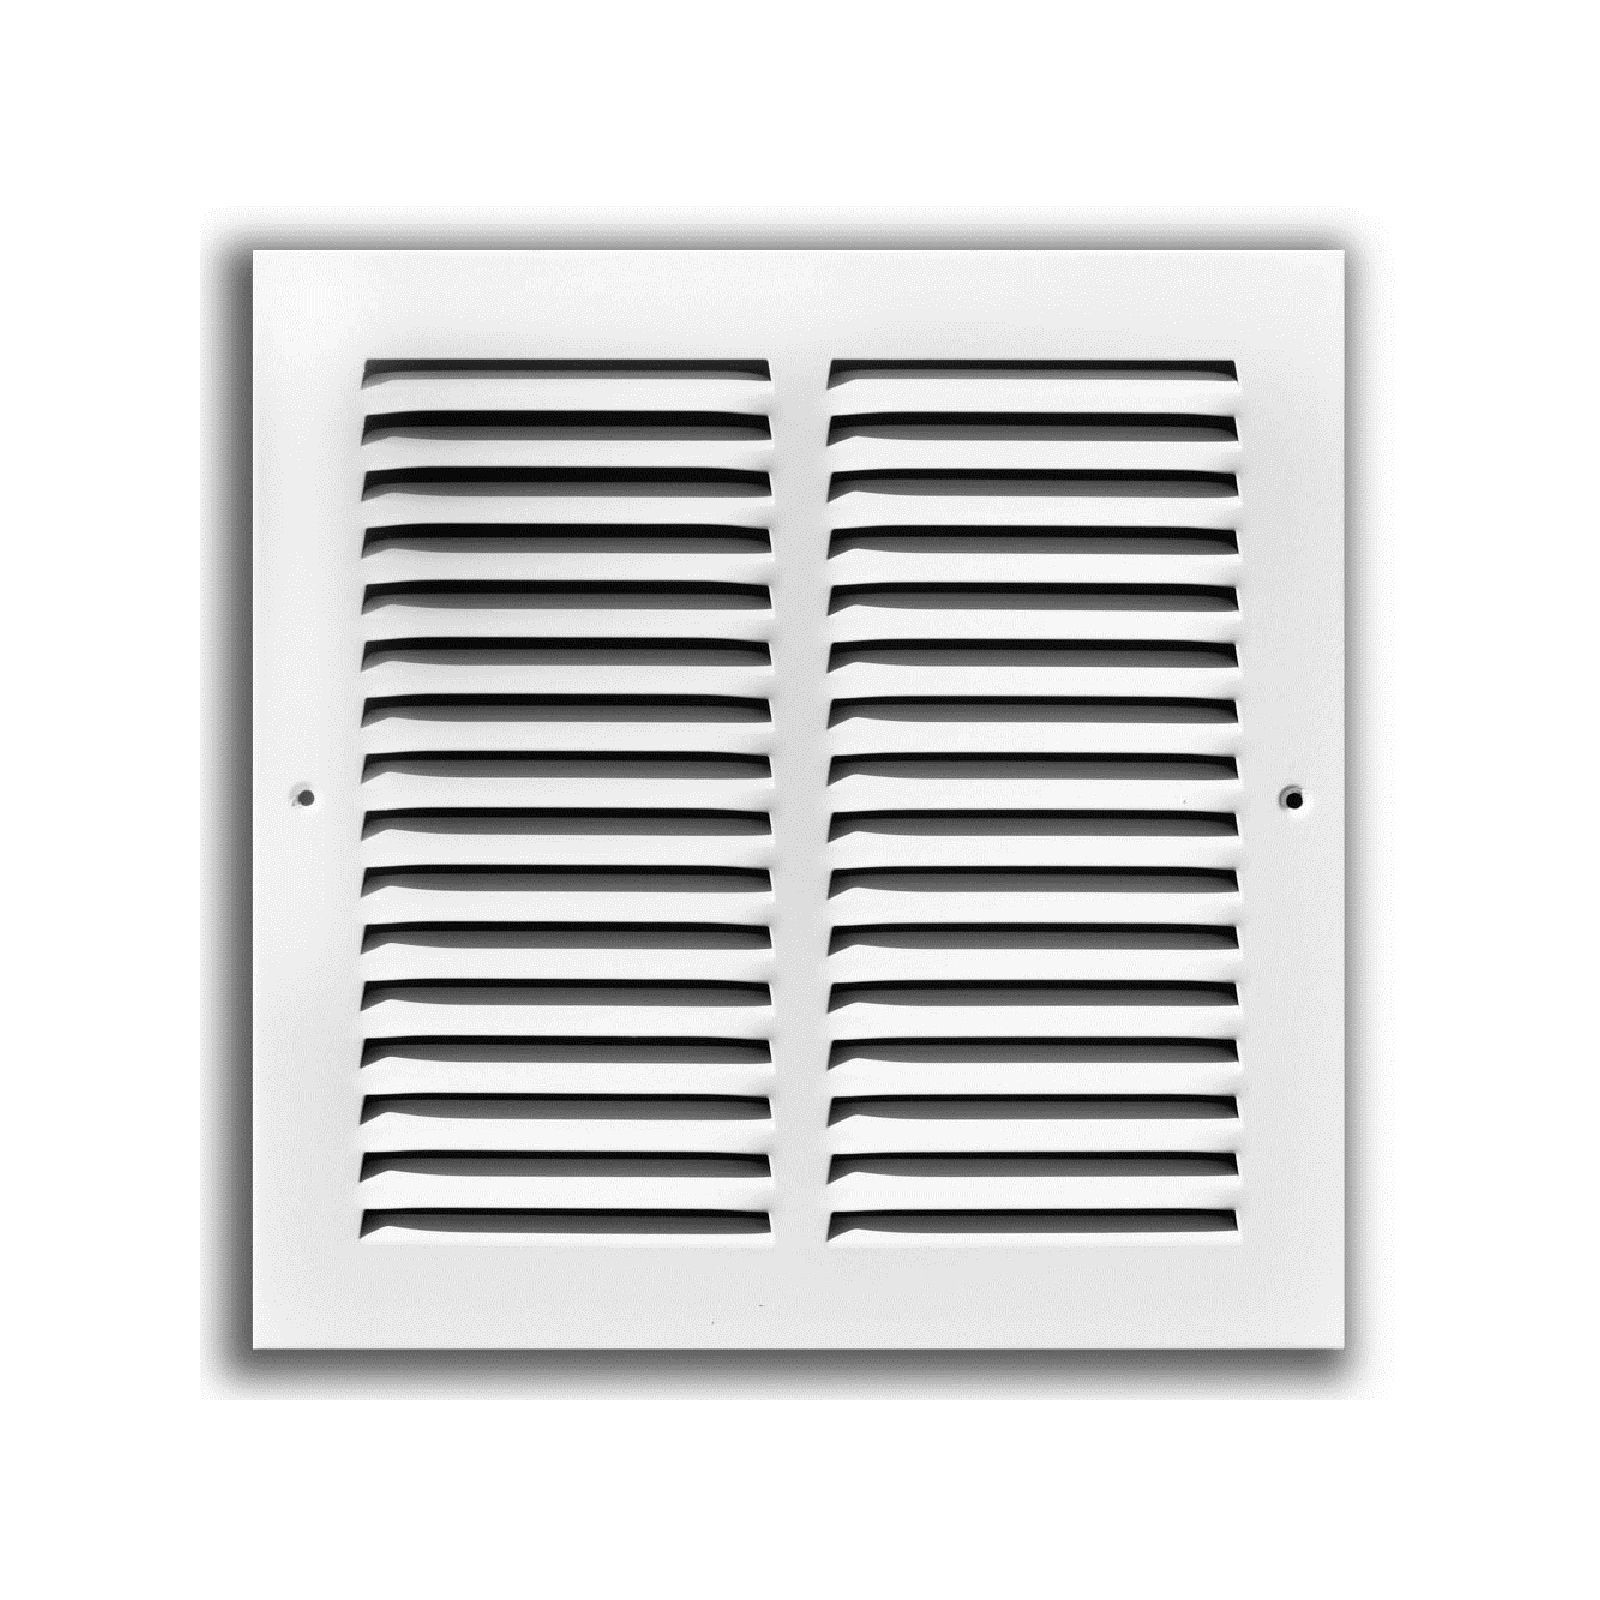 "TRUaire 170 16X06 - Steel Return Air Grille - 1/2"" Spaced Fin, White, 16"" X 06"""